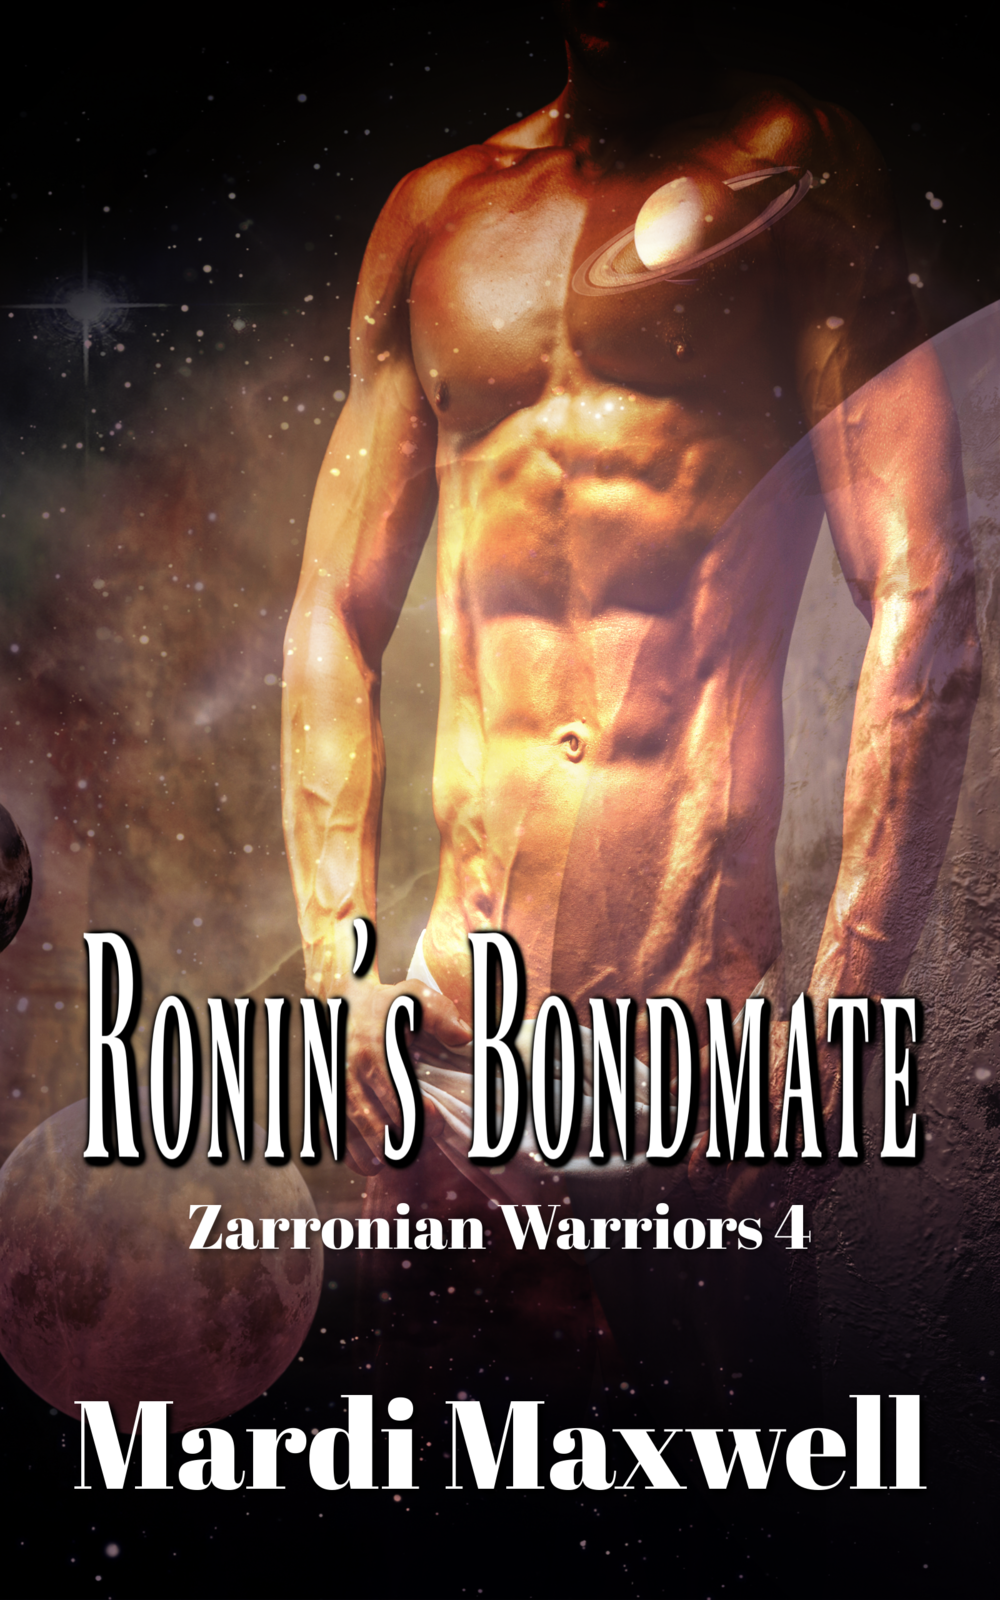 Ronin's Bondmate - Ronin Hughson has searched the Universe for his mate. He's accepted he'll never find her when he sees her on Krystali. He's relieved and eager to bond with her until he meets her. Belle is stunningly beautiful but she's obnoxious and arrogant, and not the kind of female he hoped to have as his mate and the mother of his children.Belle has protected her friends from her mother's evil schemes by misbehaving and pushing them away. She isn't surprised when she's finally banished from the community until Ronin insists on going with her. Belle is determined to keep her secrets and does everything she can to run him off, but Fate has other plans for them. Now, she and Ronin have a decision to make about their future, but either way it's going to be a battle.